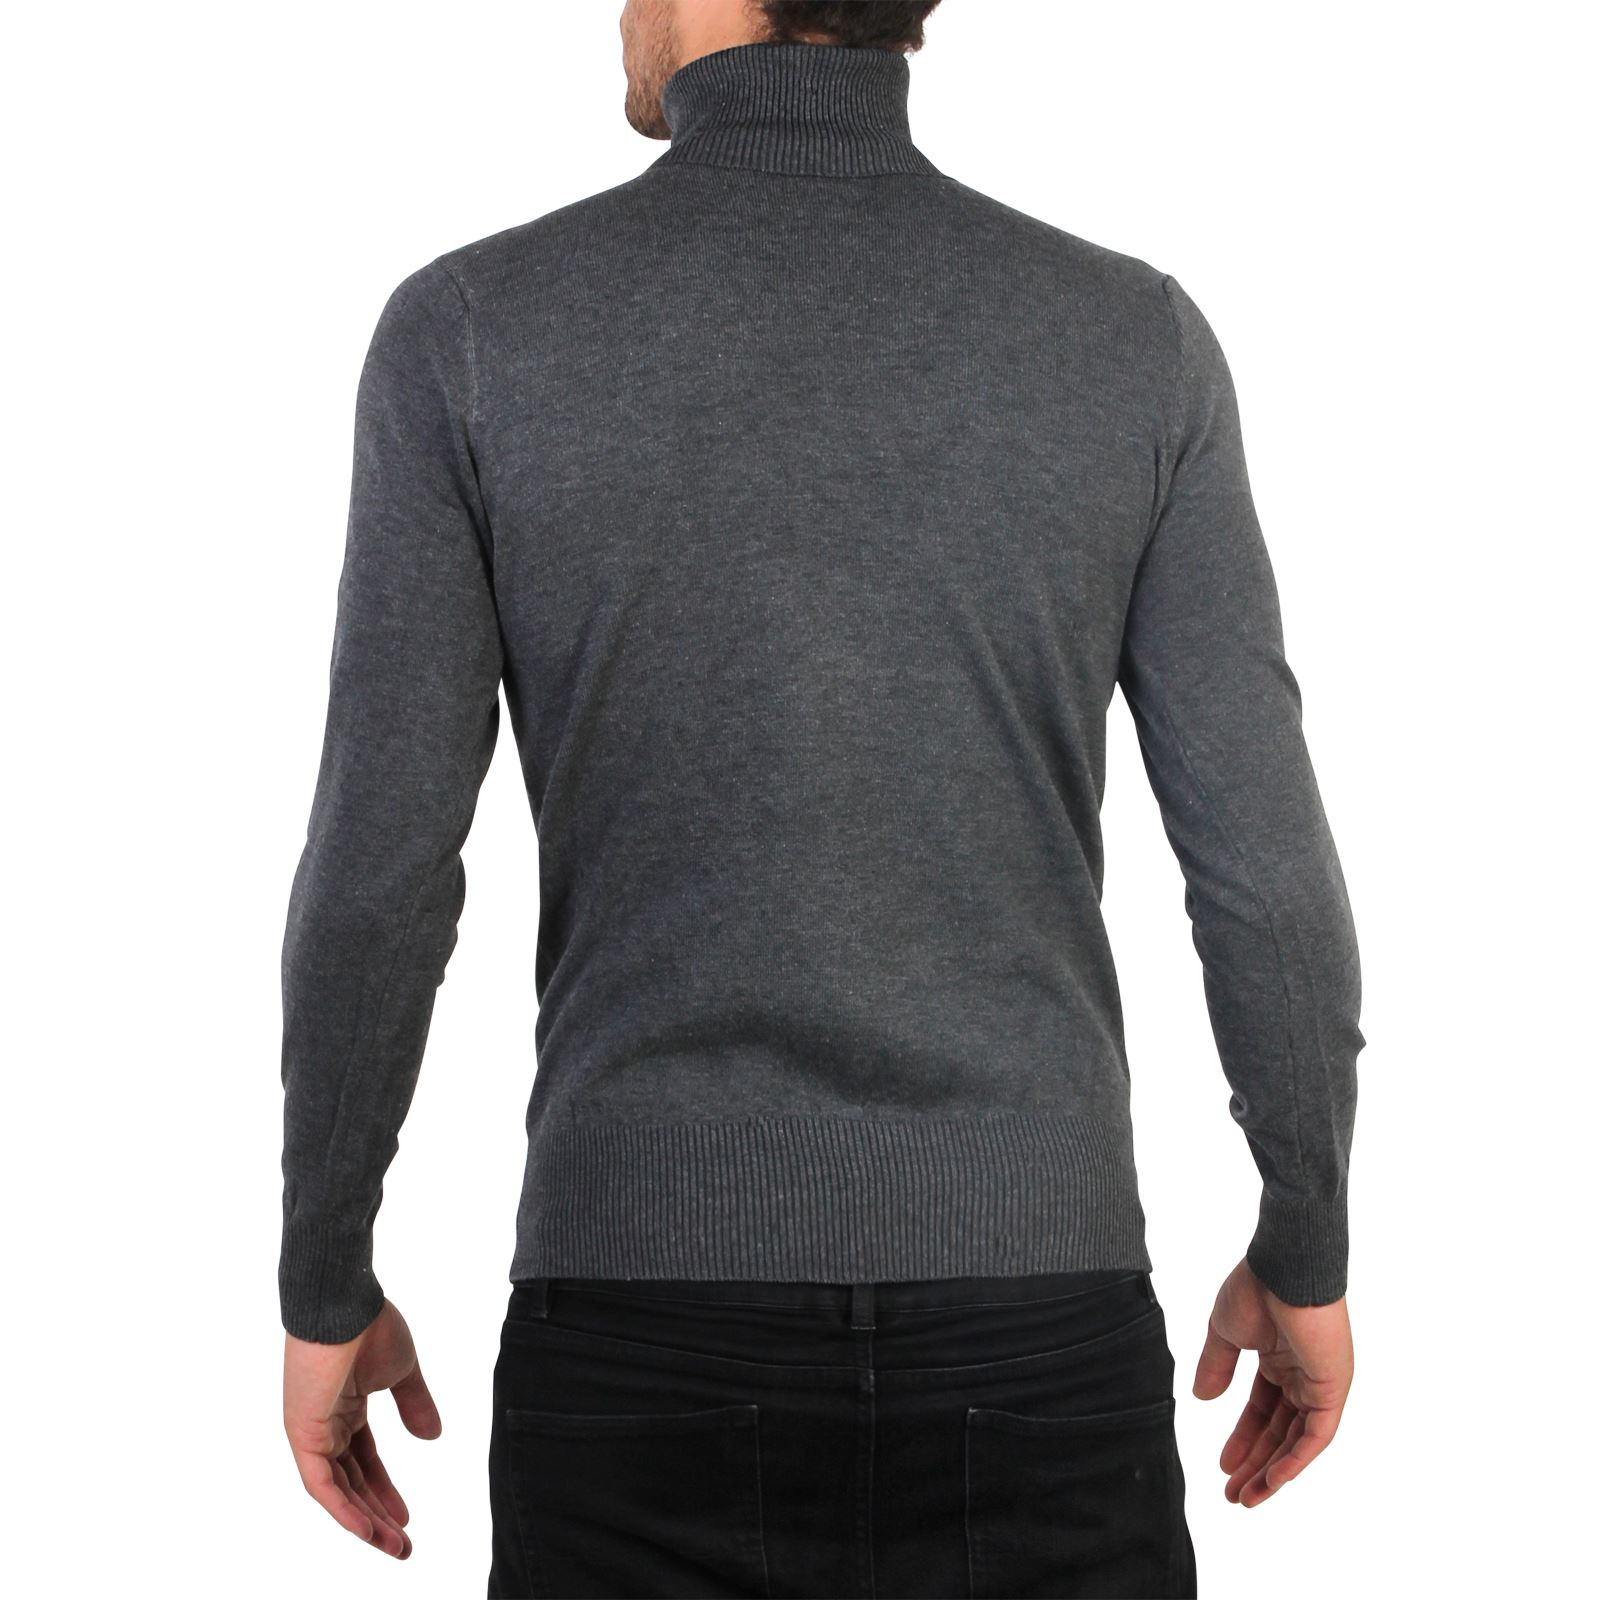 Mens Turtle Neck Roll Jumper Sweater Cotton Knitwear Winter Pullover Polo Top